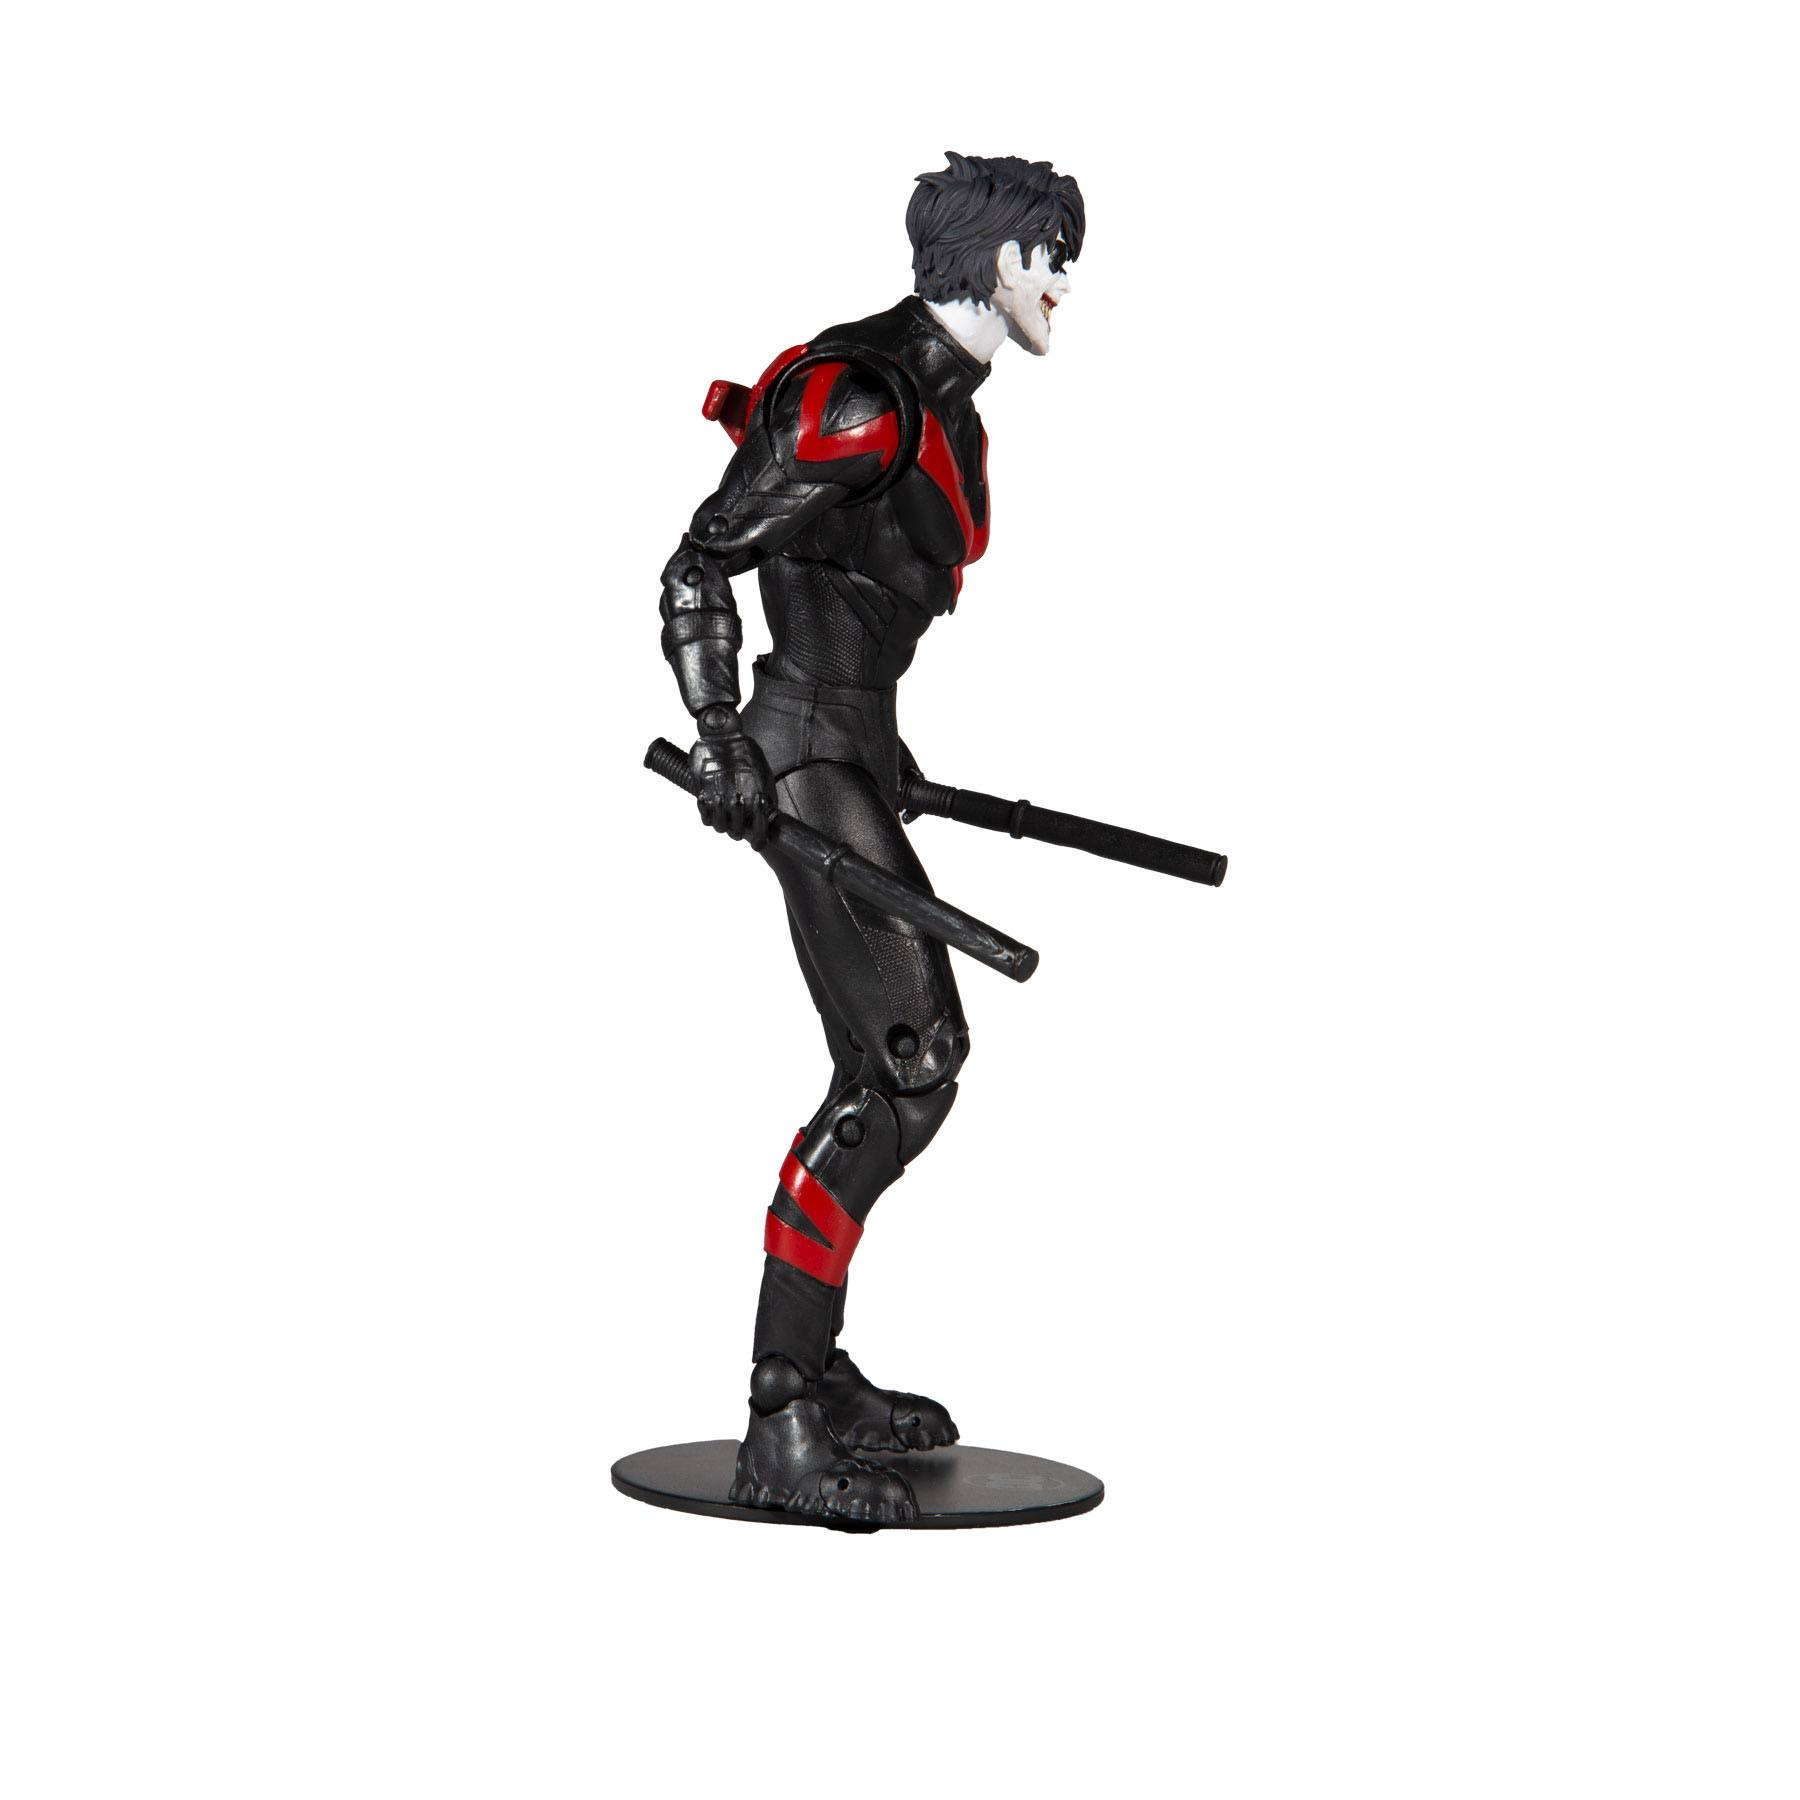 DC Multiverse Actionfigur Nightwing Joker 18 cm MCF15139-8 787926151398